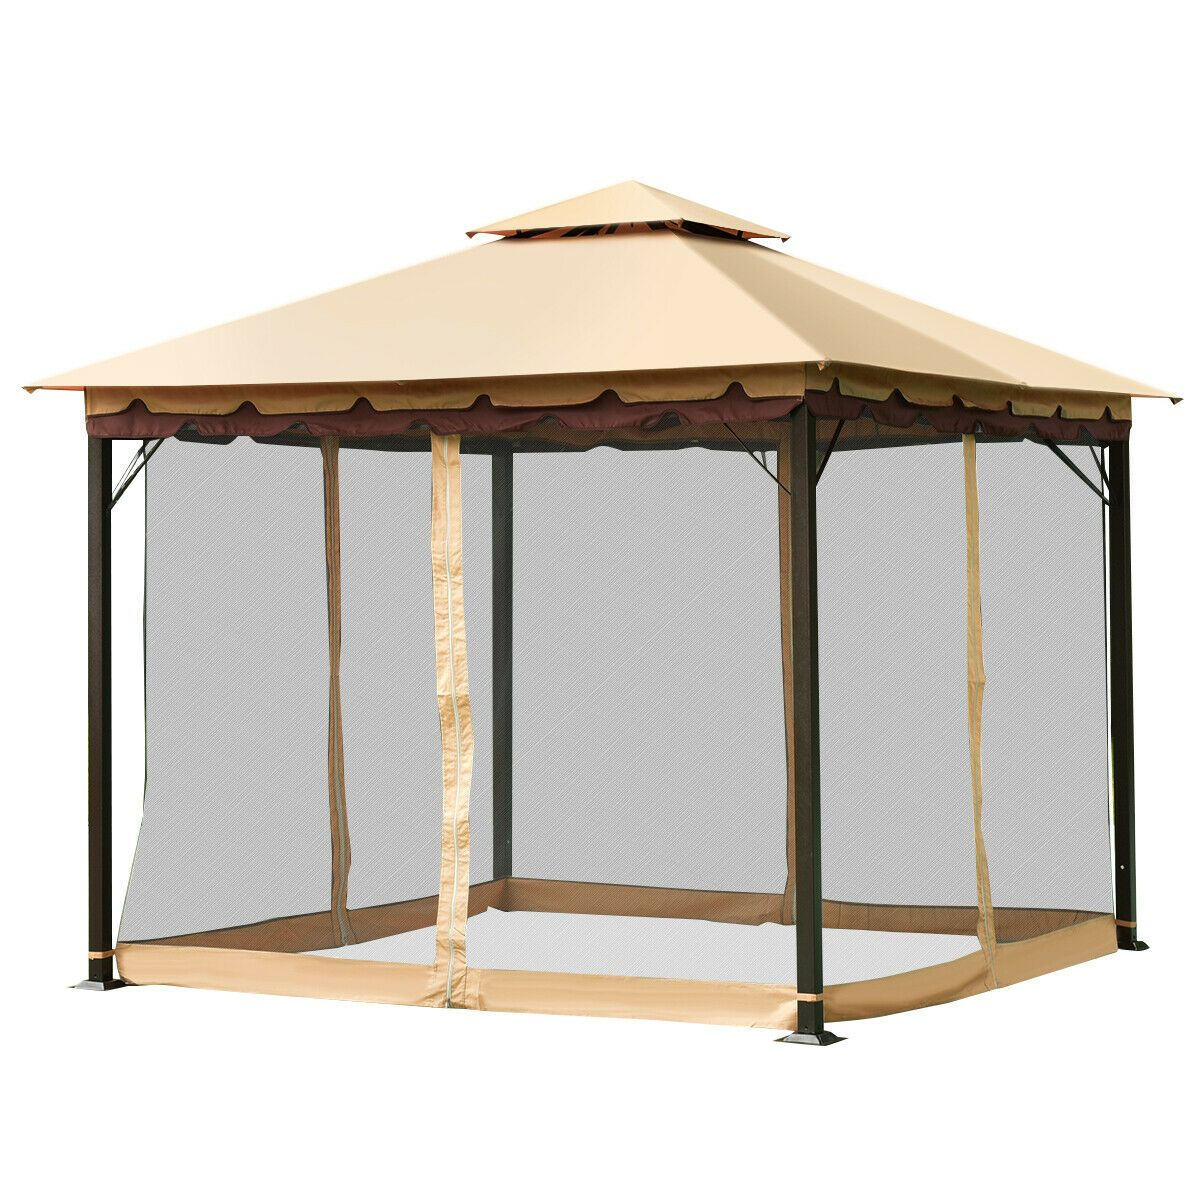 Online Gym Shop Cb19809 10 X 10 Ft Outdoor Gazebo 2 Tier Patio Tent Walmart Com In 2020 Steel Gazebo Gazebo Canopy Patio Tents